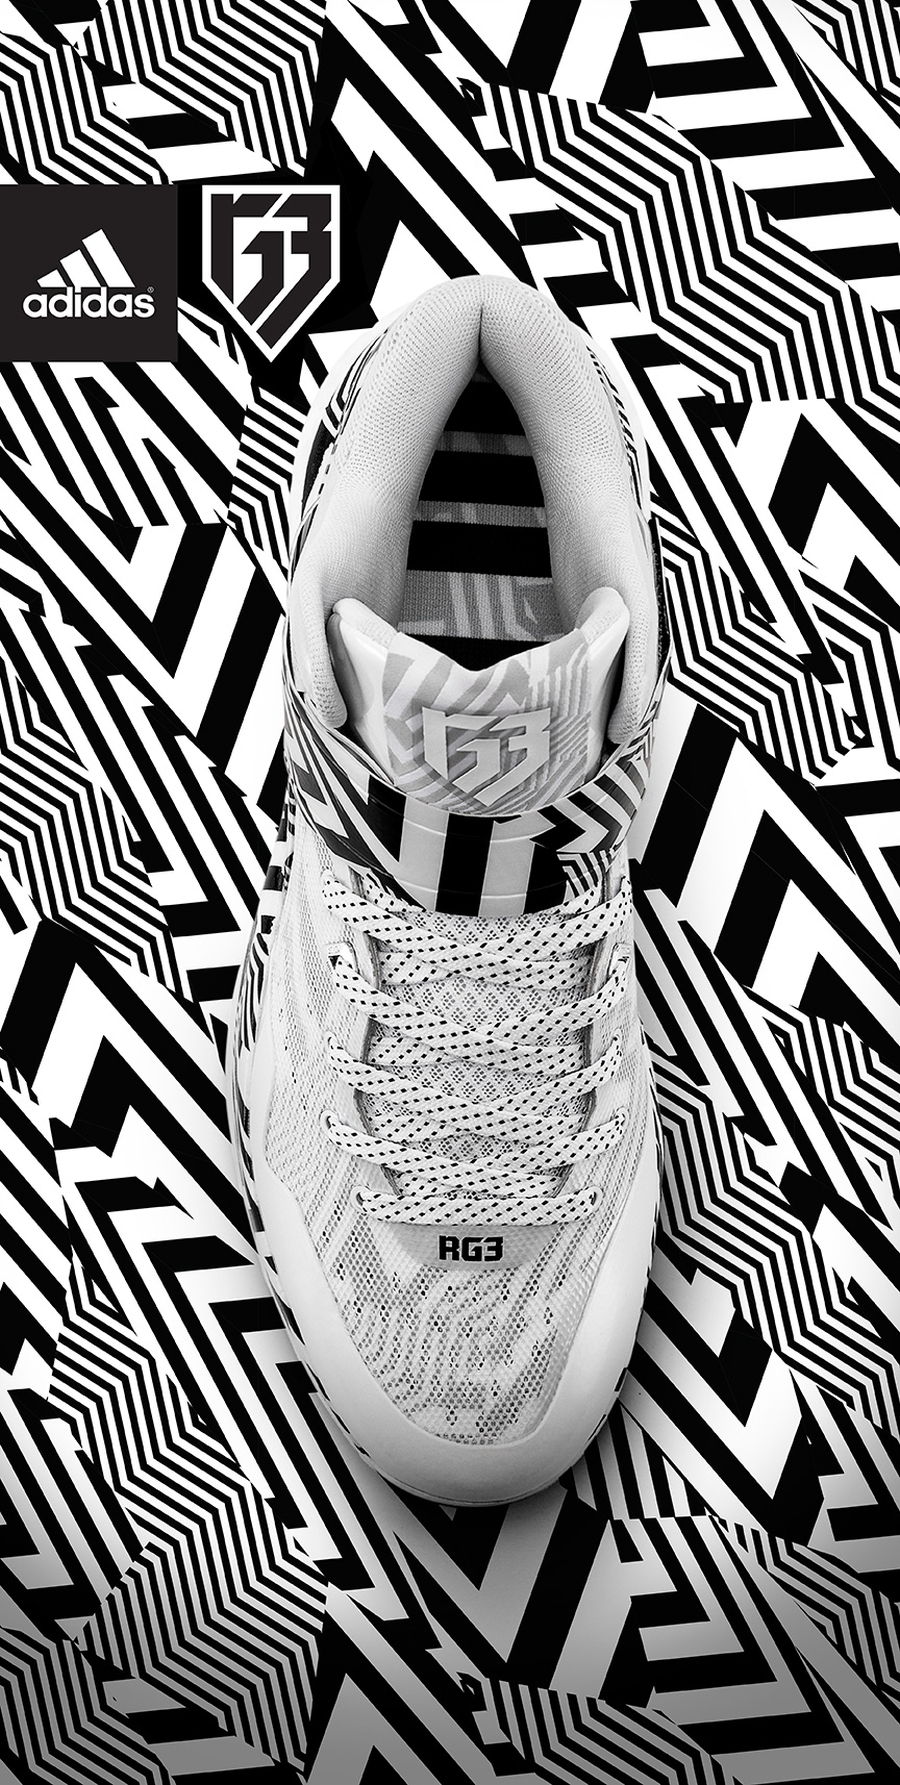 adidas Unveils RG3 s First Signature Shoe - The RG3 Energy Boost - Page 3  of 5 - SneakerNews.com 1b00ba2ccd